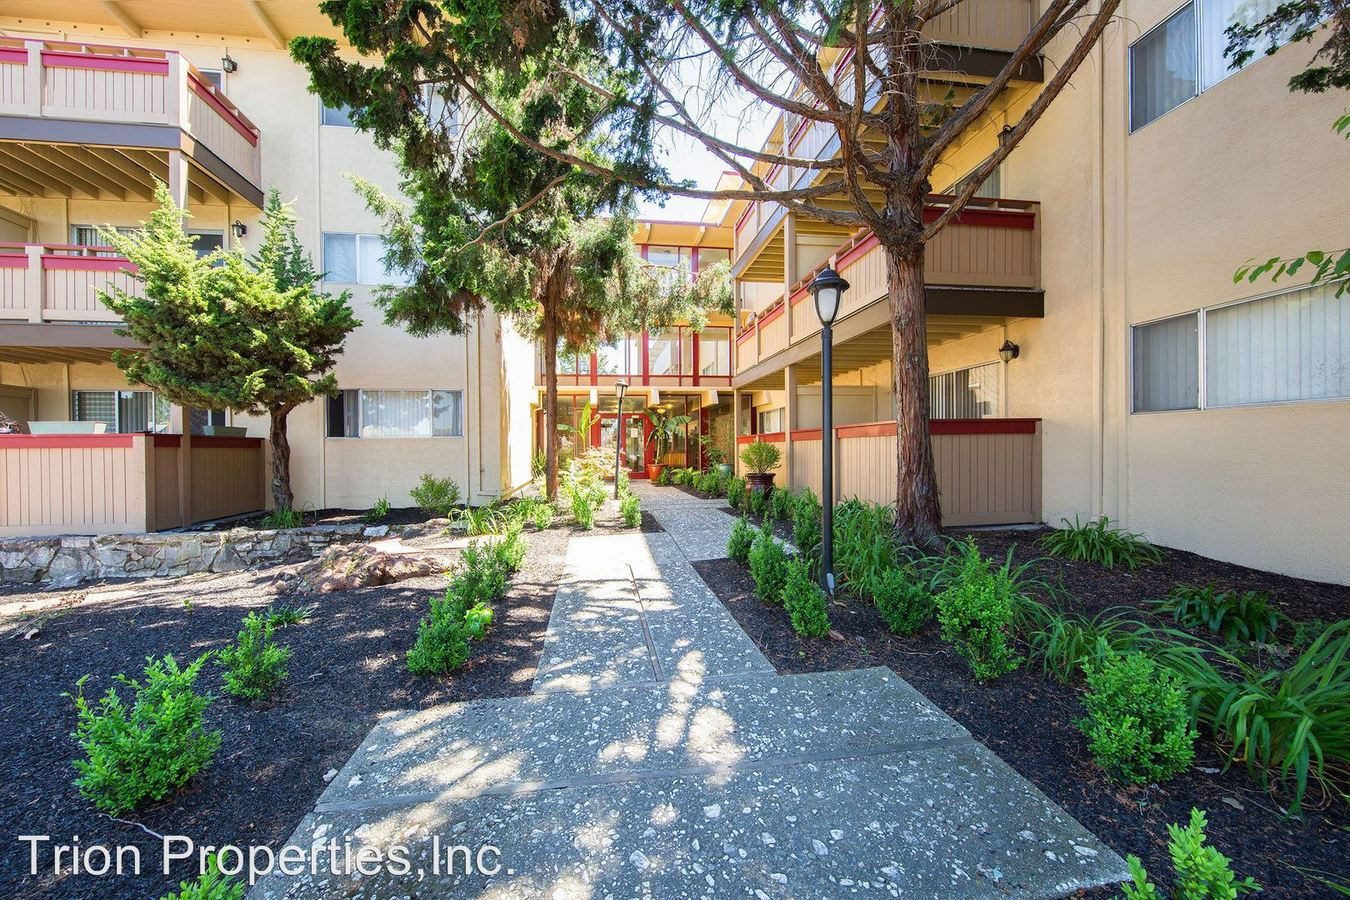 1 Bedroom 1 Bathroom Apartment for rent at 77 & 85 Estabrook St. in San Leandro, CA